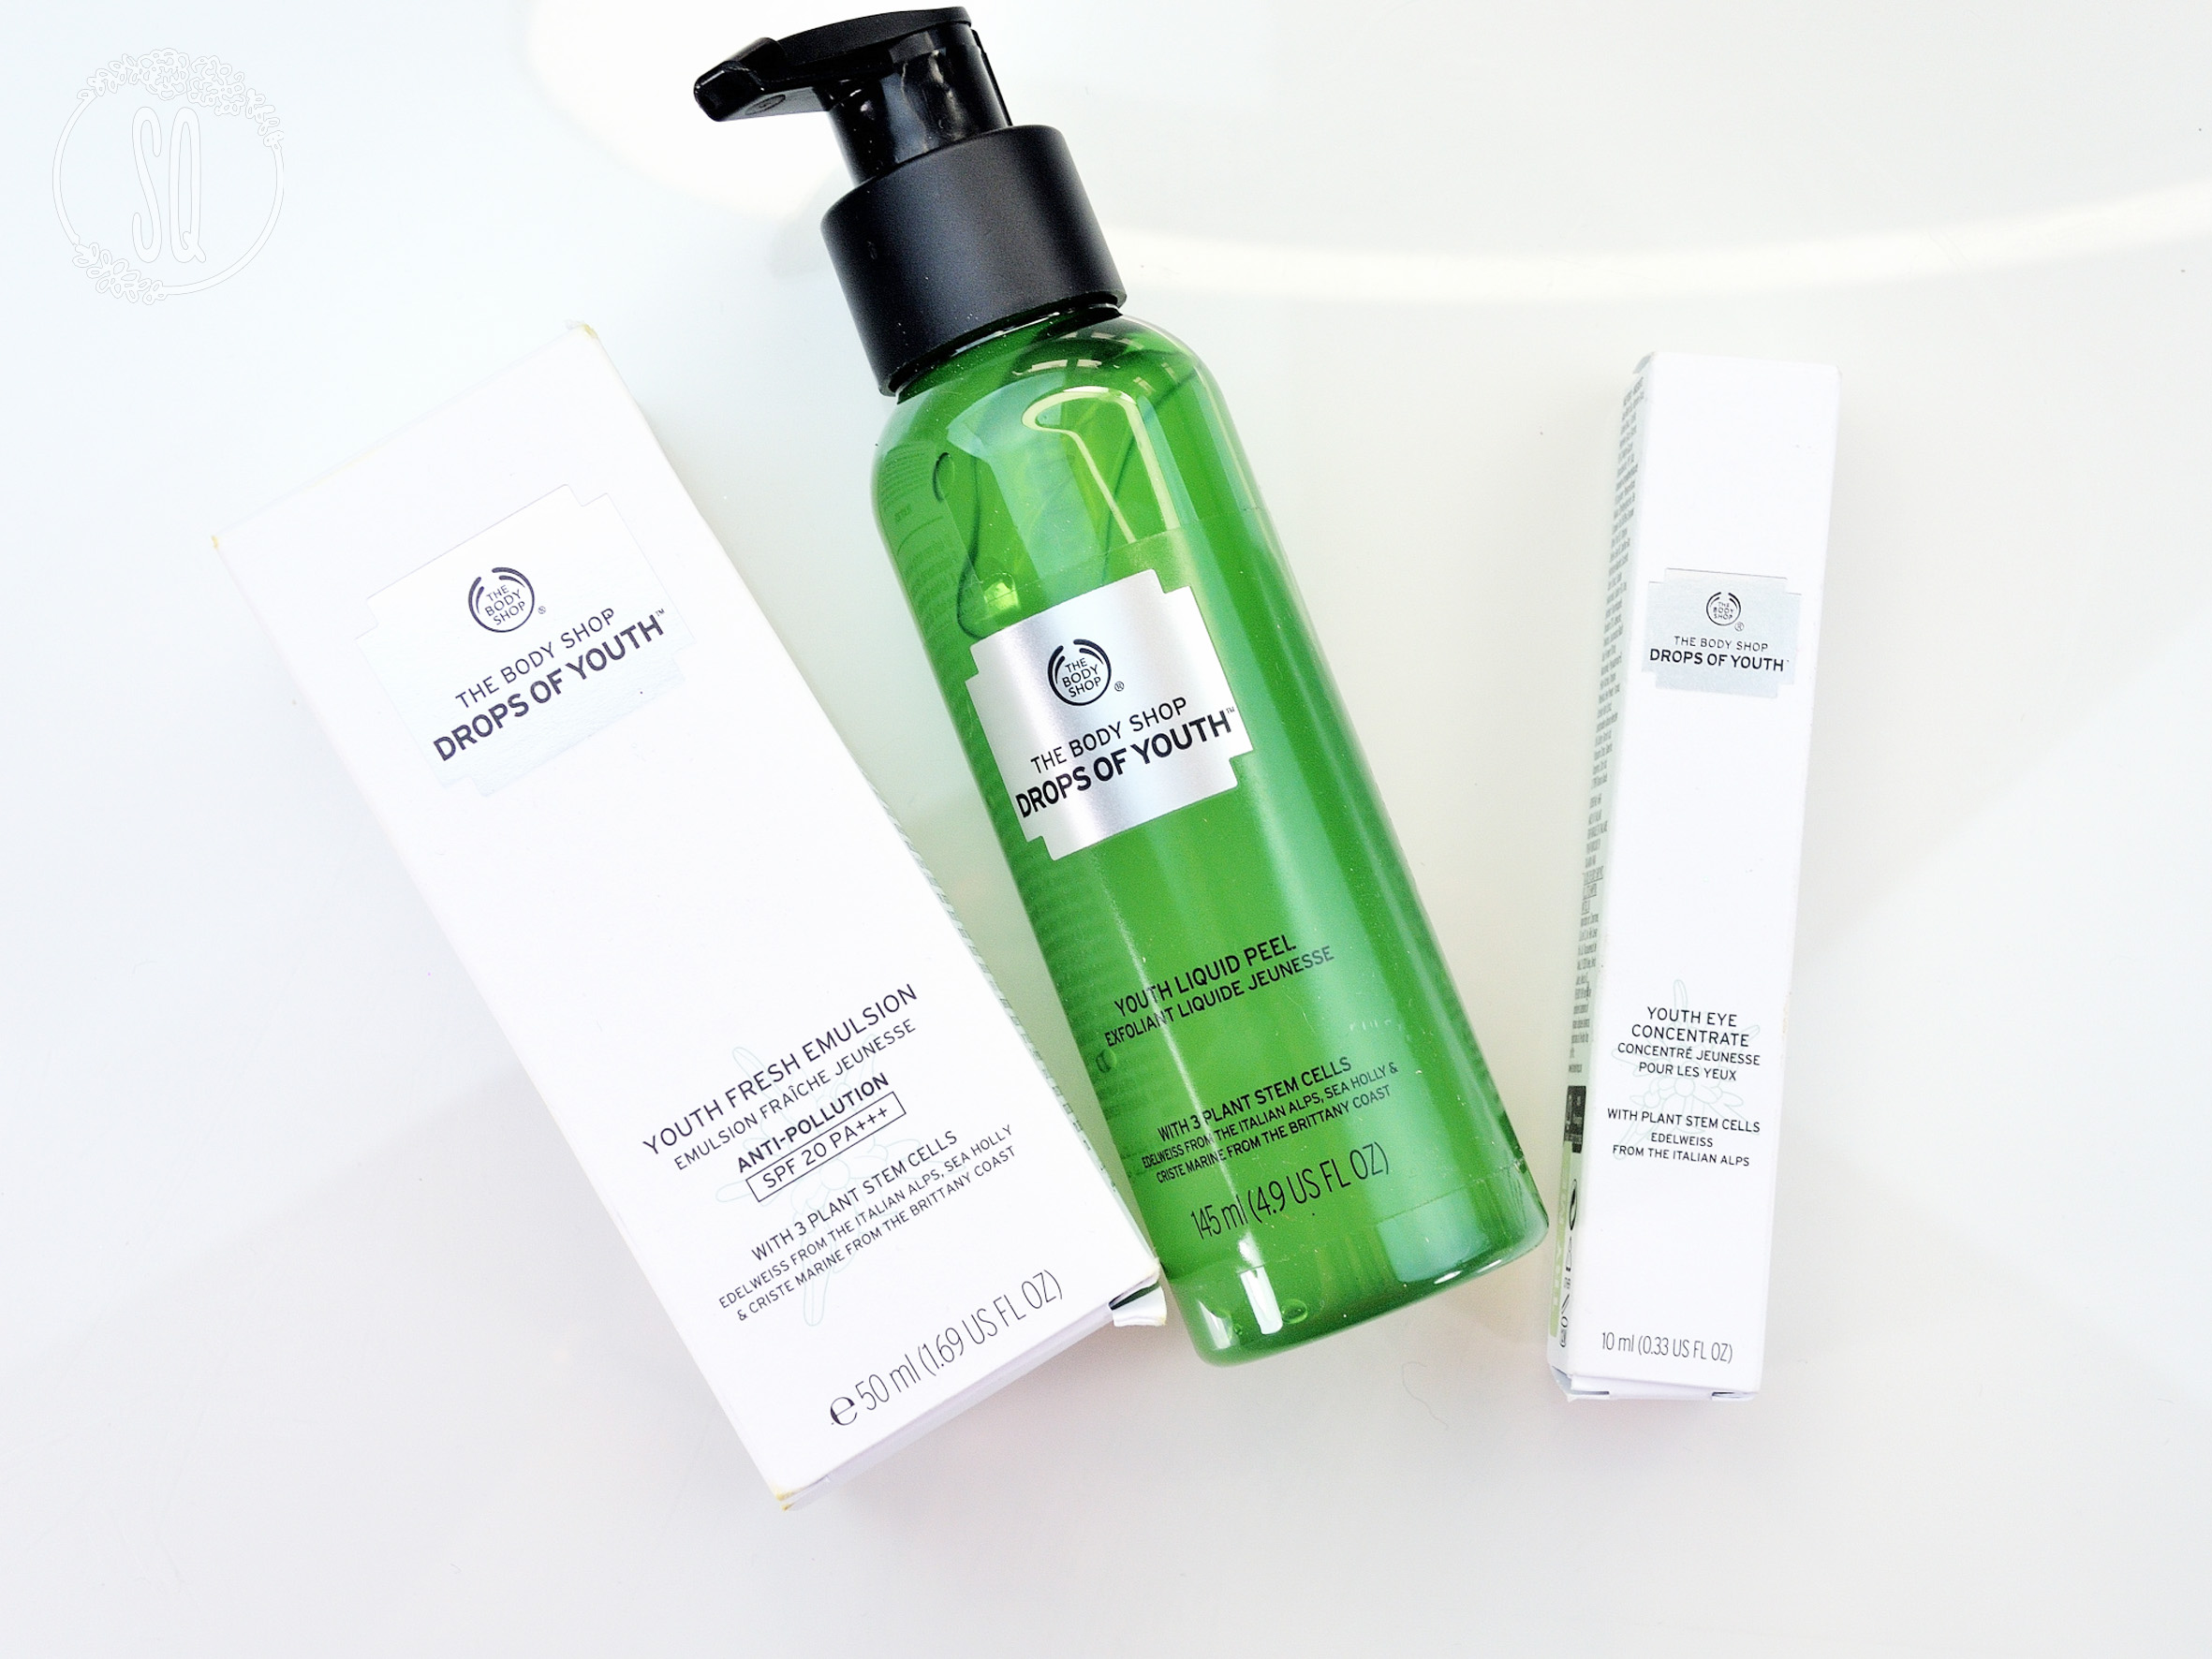 Nuevo Peeling líquido Drop of Youth de The Body Shop